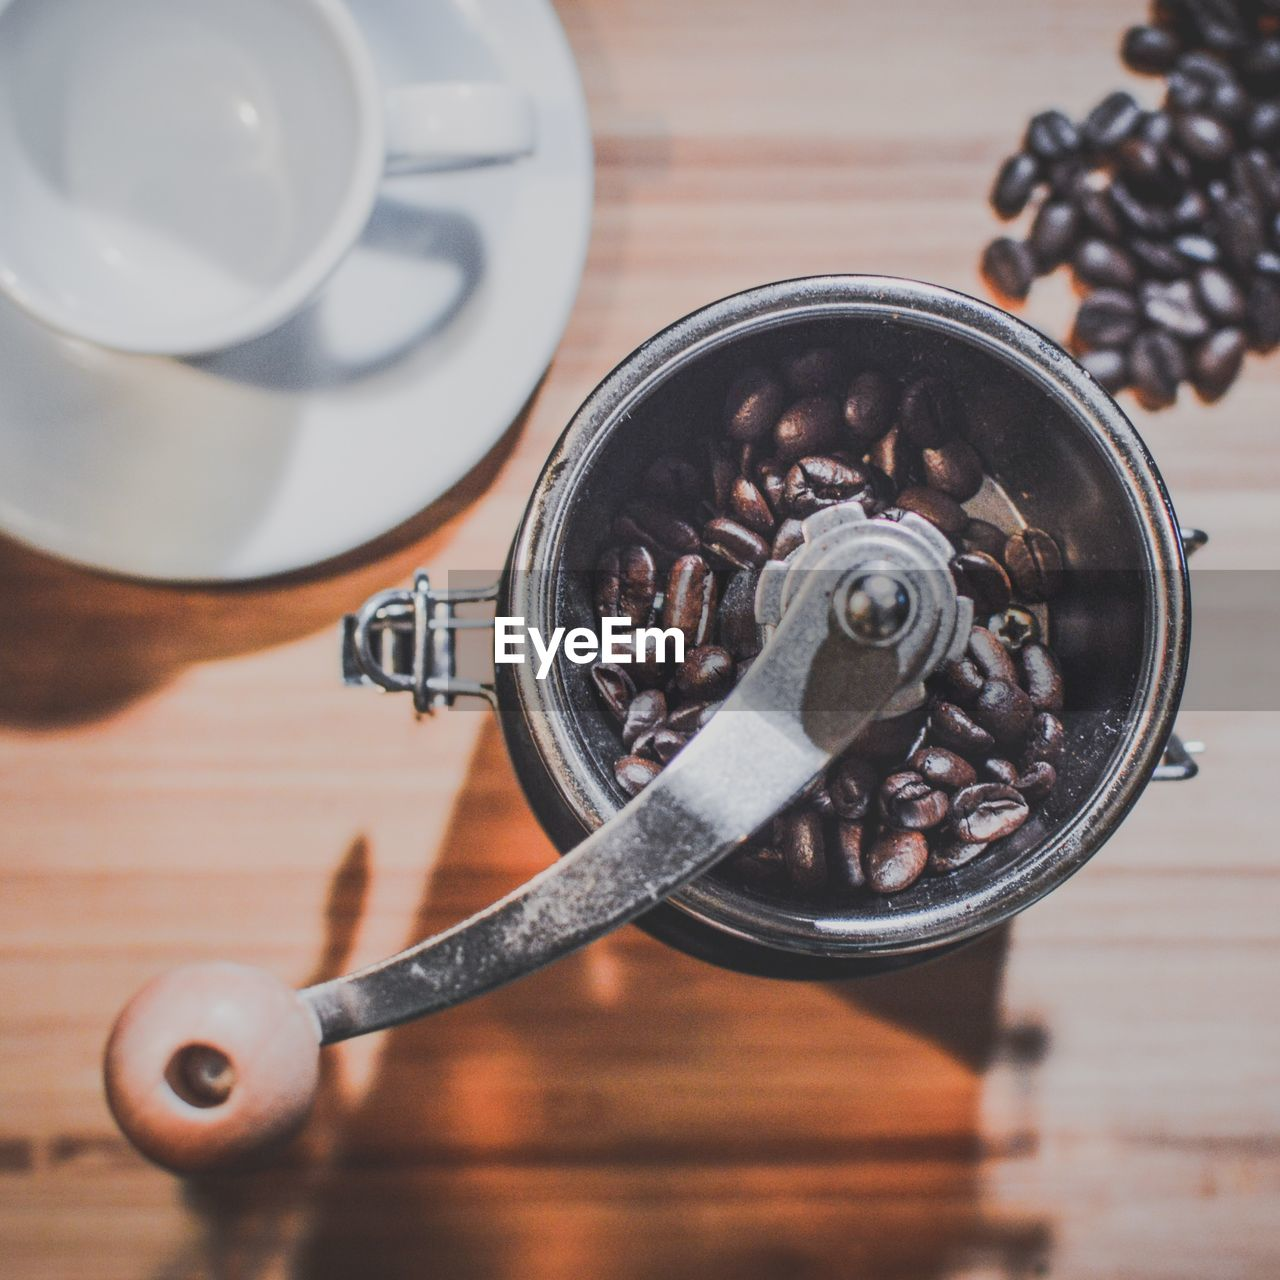 close-up, no people, table, high angle view, indoors, metal, still life, equipment, food and drink, wood - material, directly above, cup, drink, focus on foreground, handle, machine part, coffee - drink, black color, day, selective focus, silver colored